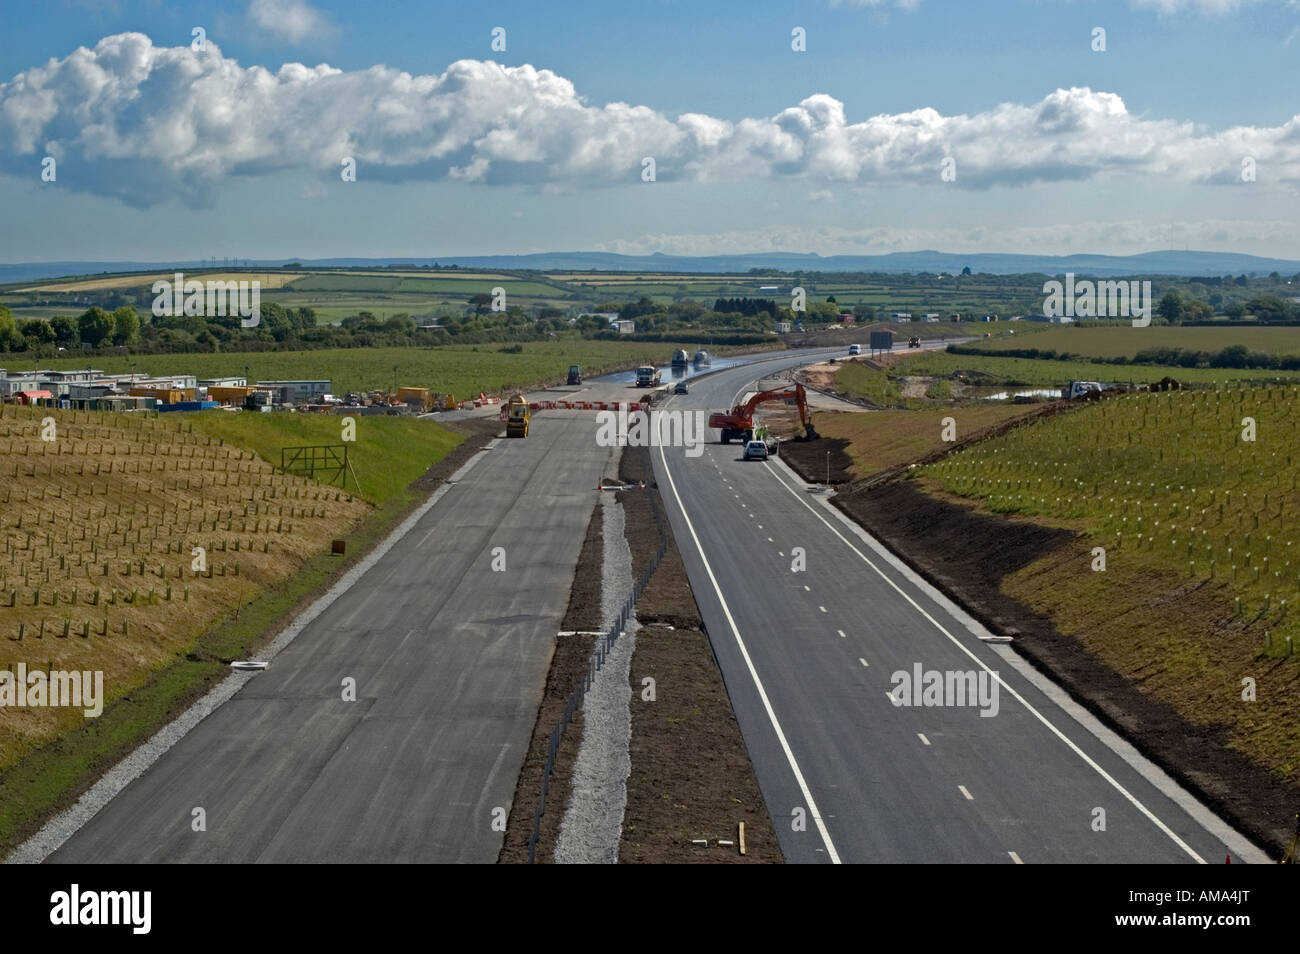 A30 dual carriageway under construction in cornwall,england - Stock Image